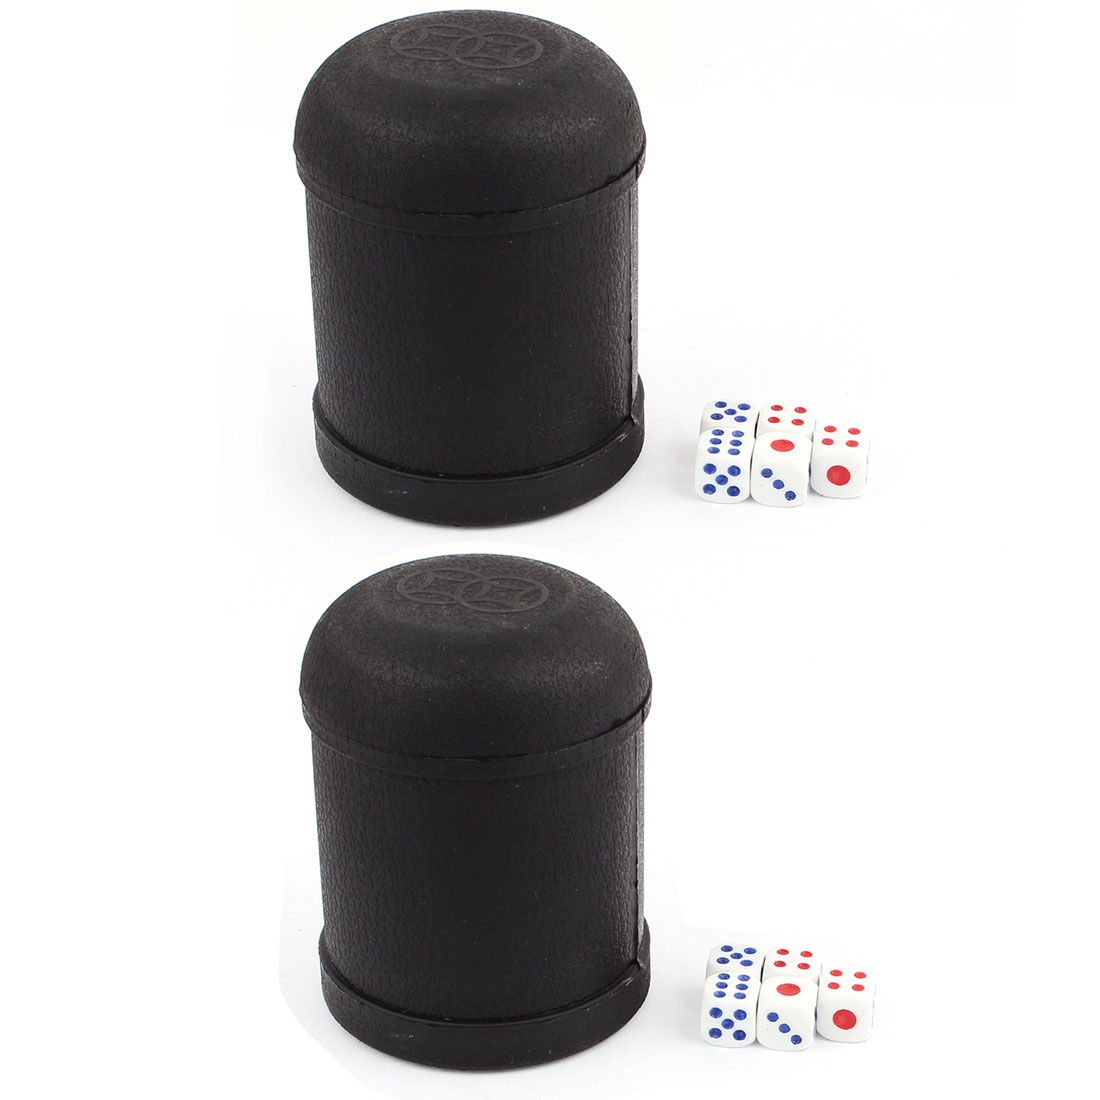 Pub Bar KTV Casino Lucky Games Plastic Shaker Cup 2pcs Black w Dices